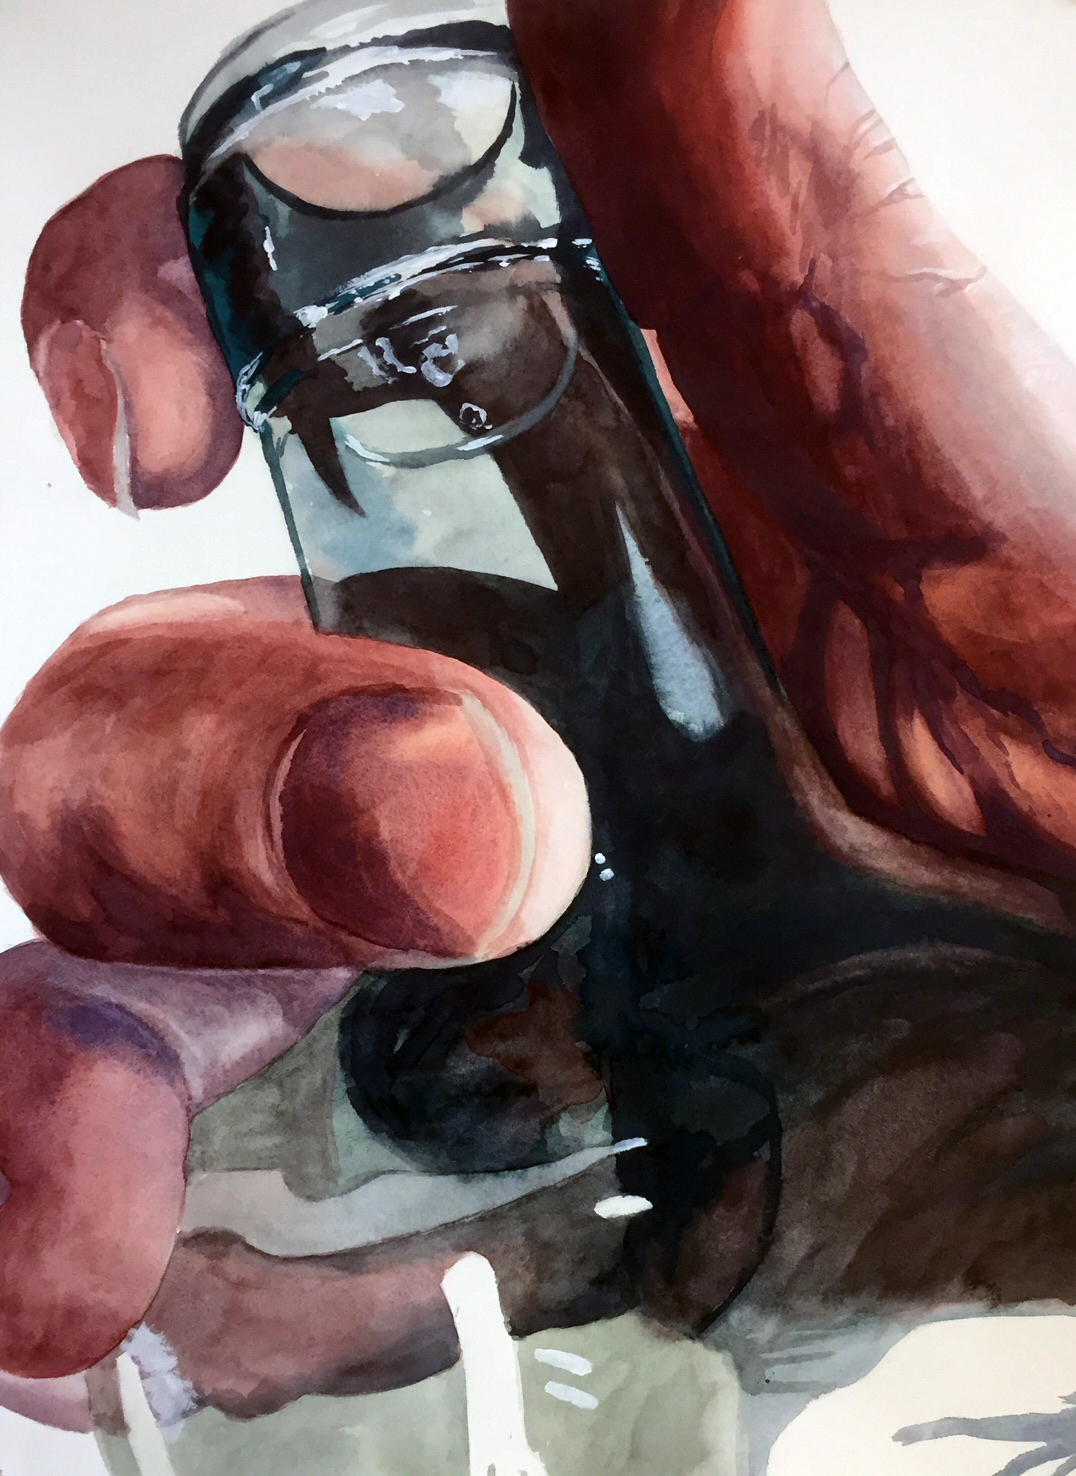 Watercolor of a hand holding a glass bottle